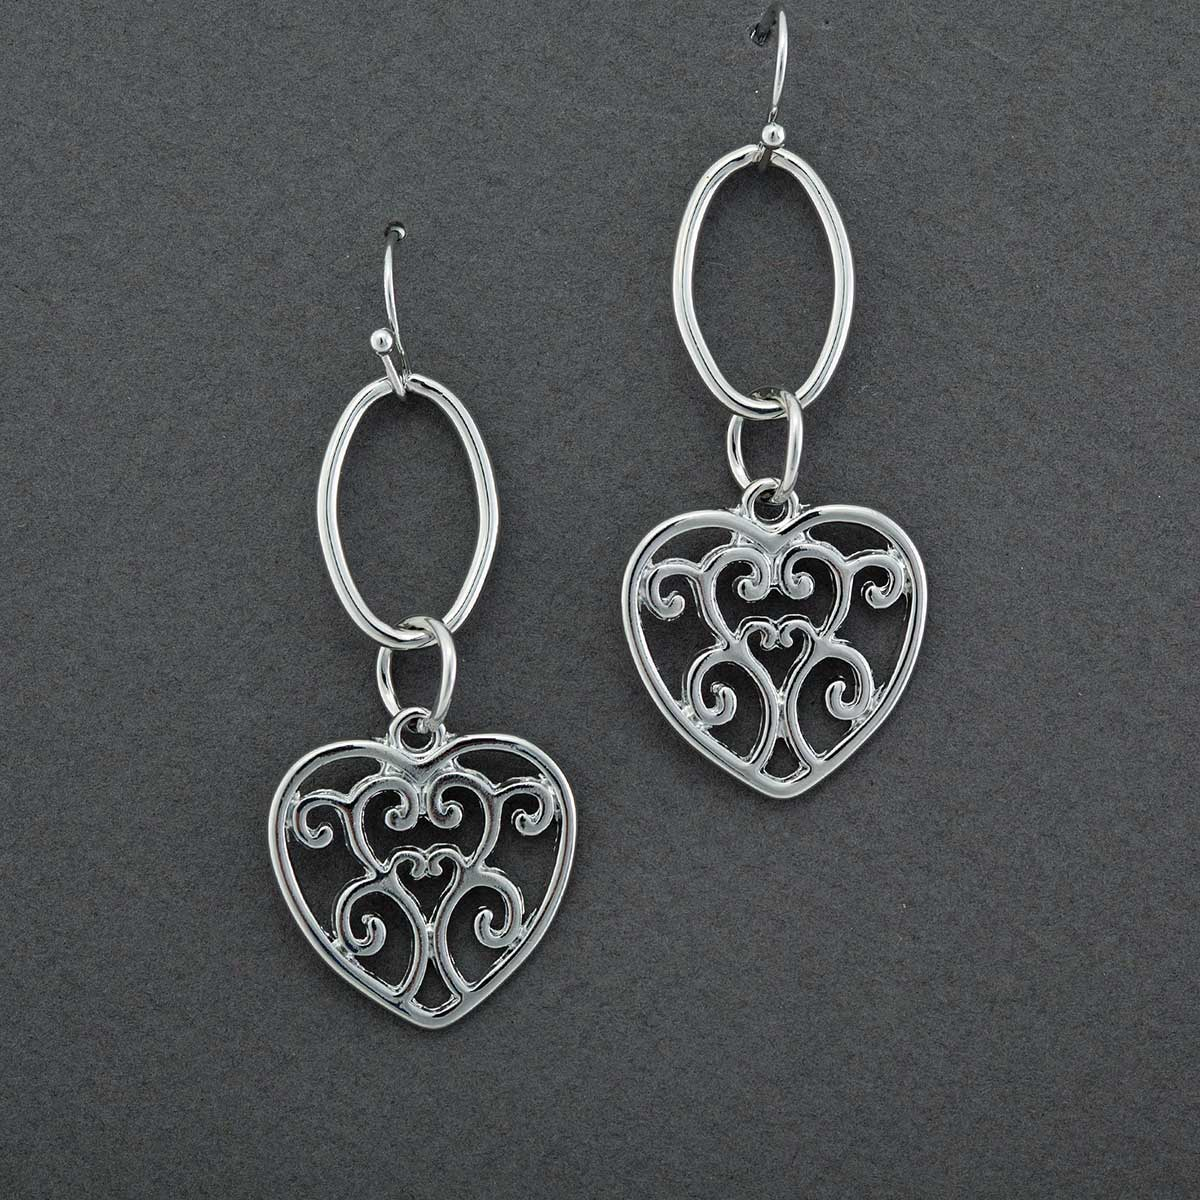 "Silver .75""x1.5"" Heart on Hoop French Wire Earrings"